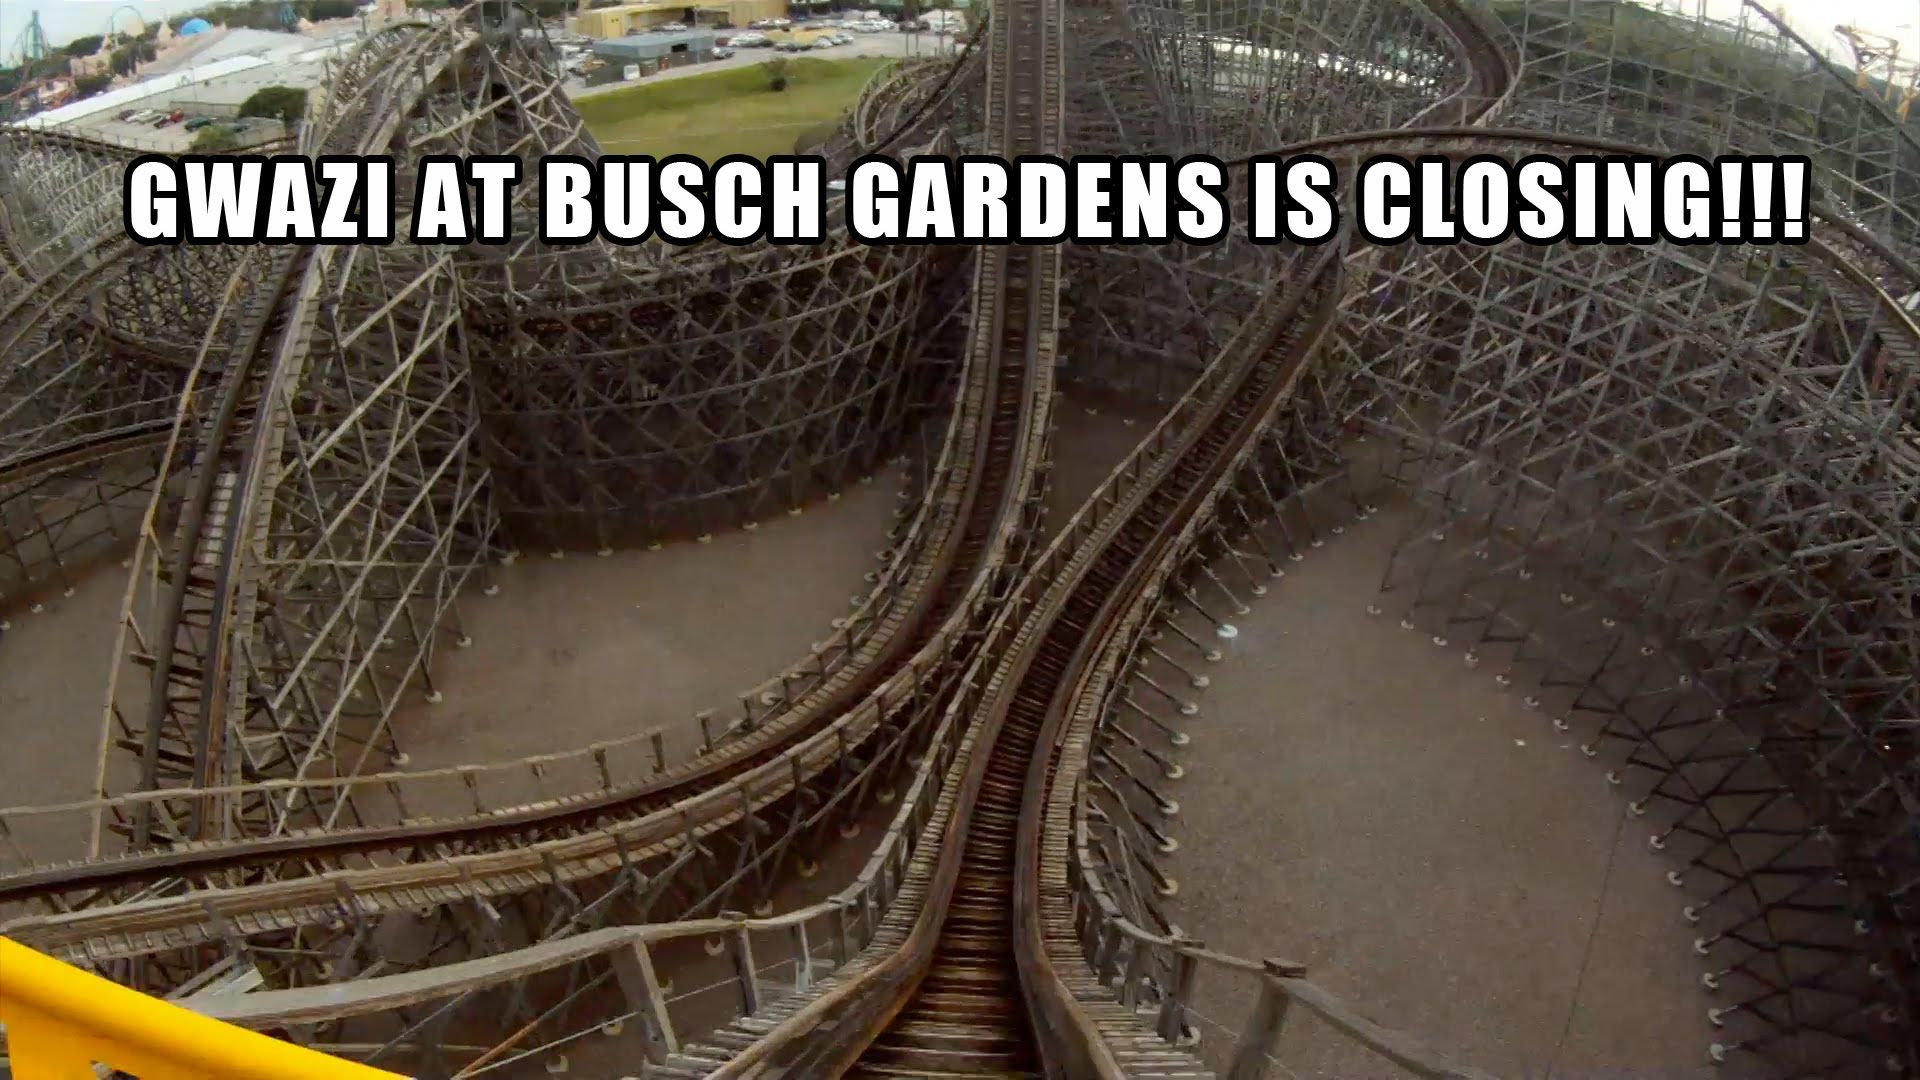 Gwazi Wooden Roller Coaster Pov Closing In Feb 2015 Busch